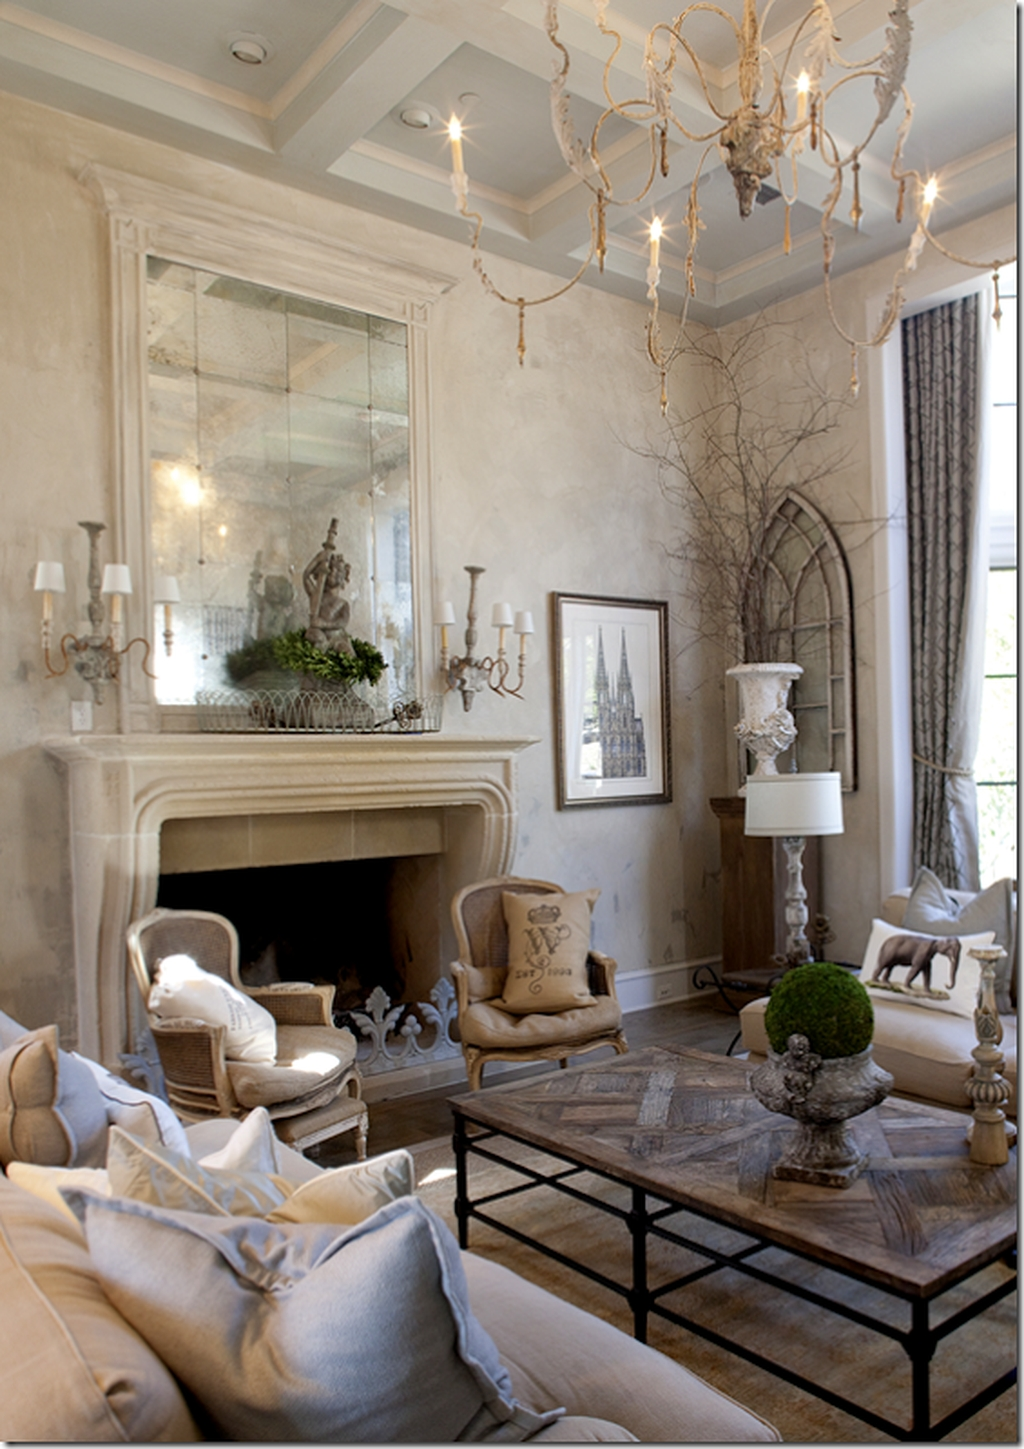 Cozy French Country Living Room Decor Ideas 36